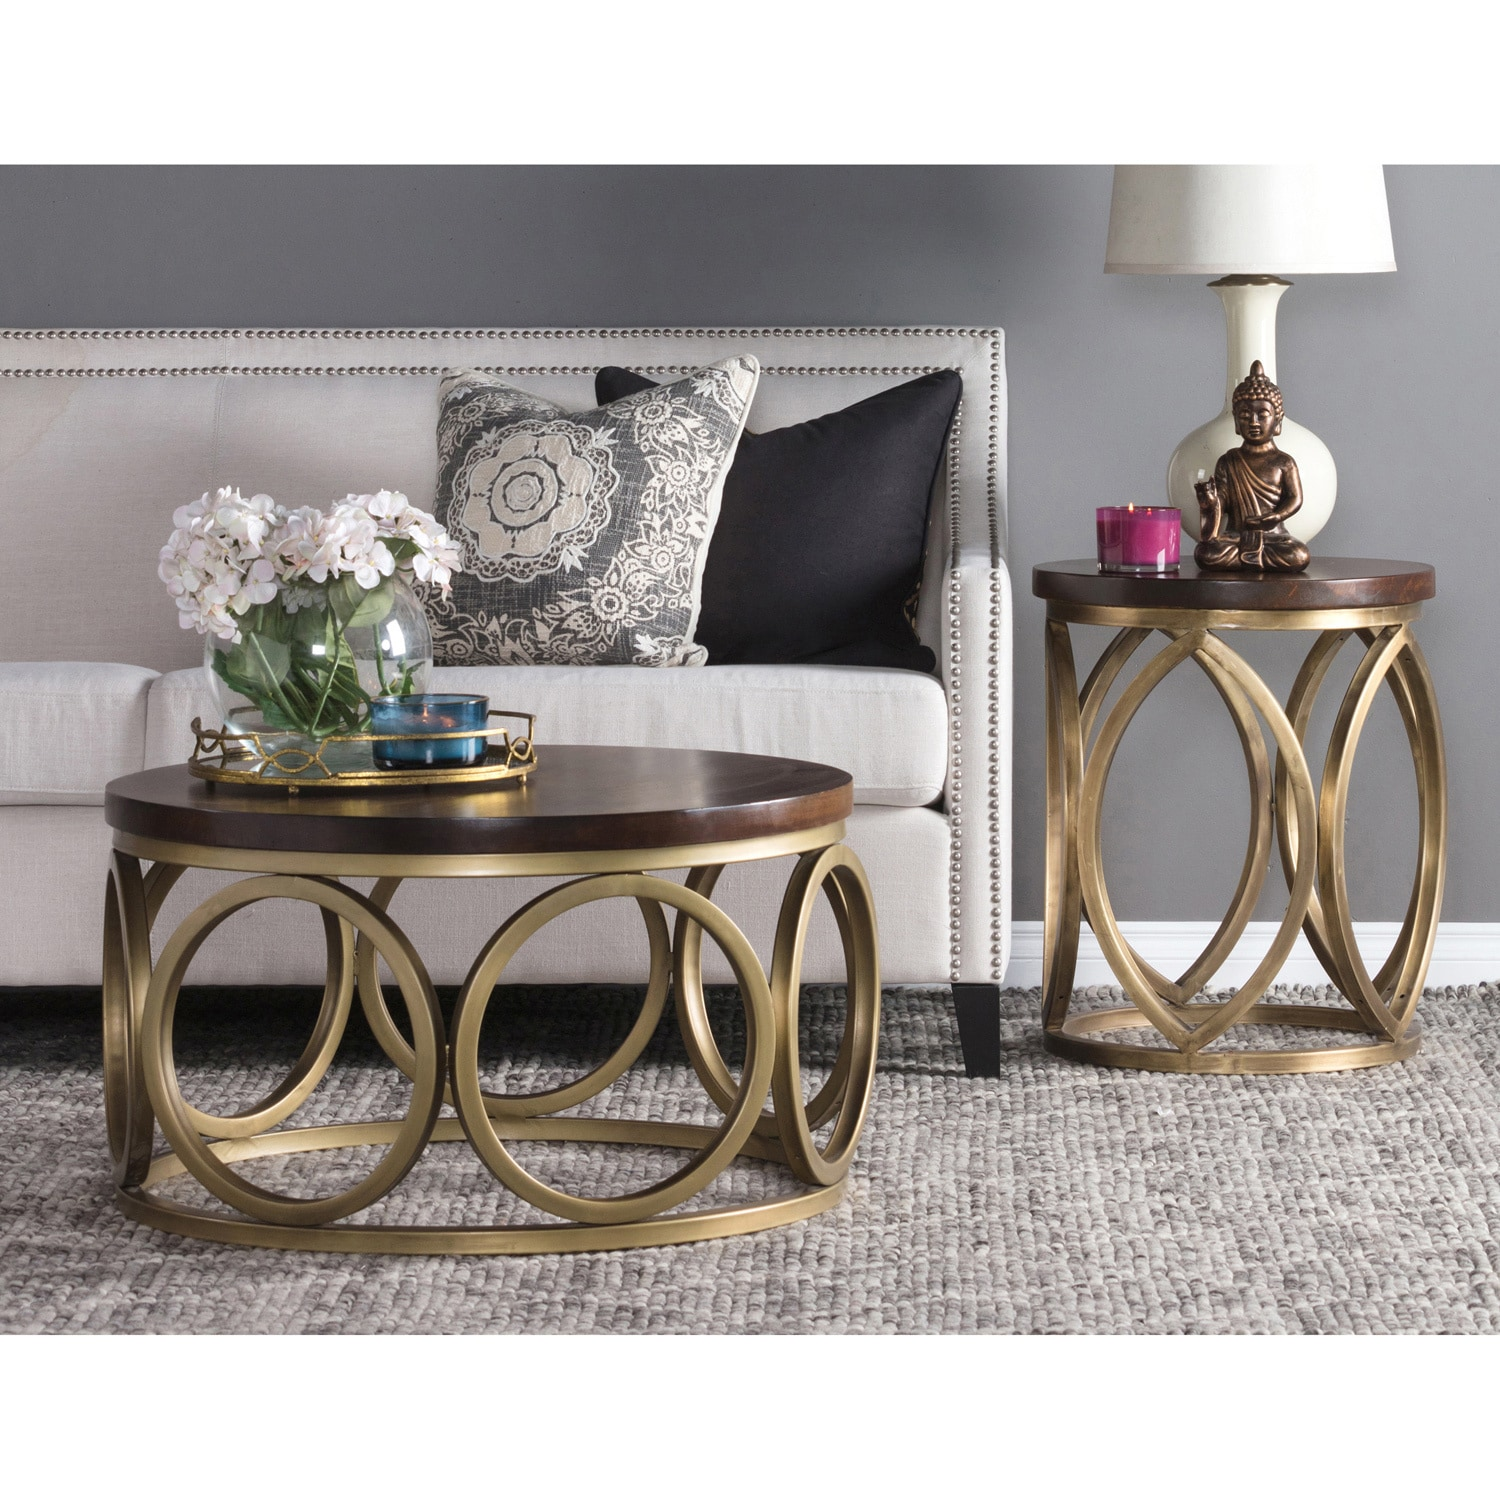 Gemma 32 Inch Wood Round Coffee Table By Kosas Home Free Shipping Today 11375762